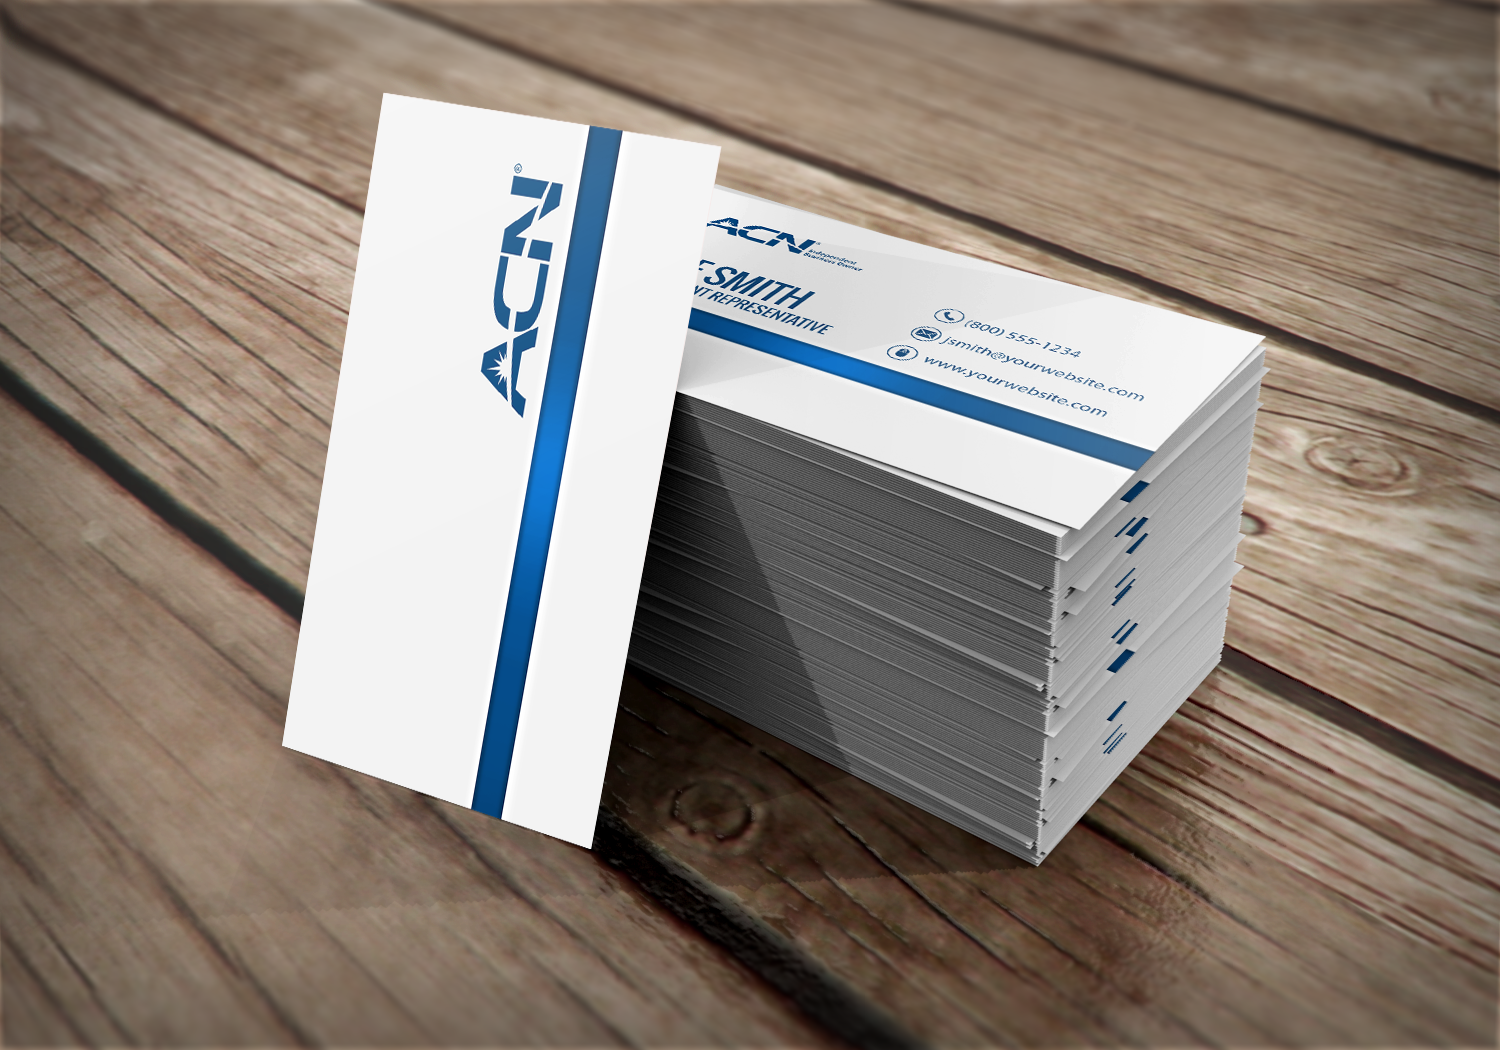 Acn Business Owners Make A Great First Impression With Our Business Card Designs Mlm Acn Printing Business Cards Free Business Cards Business Card Design